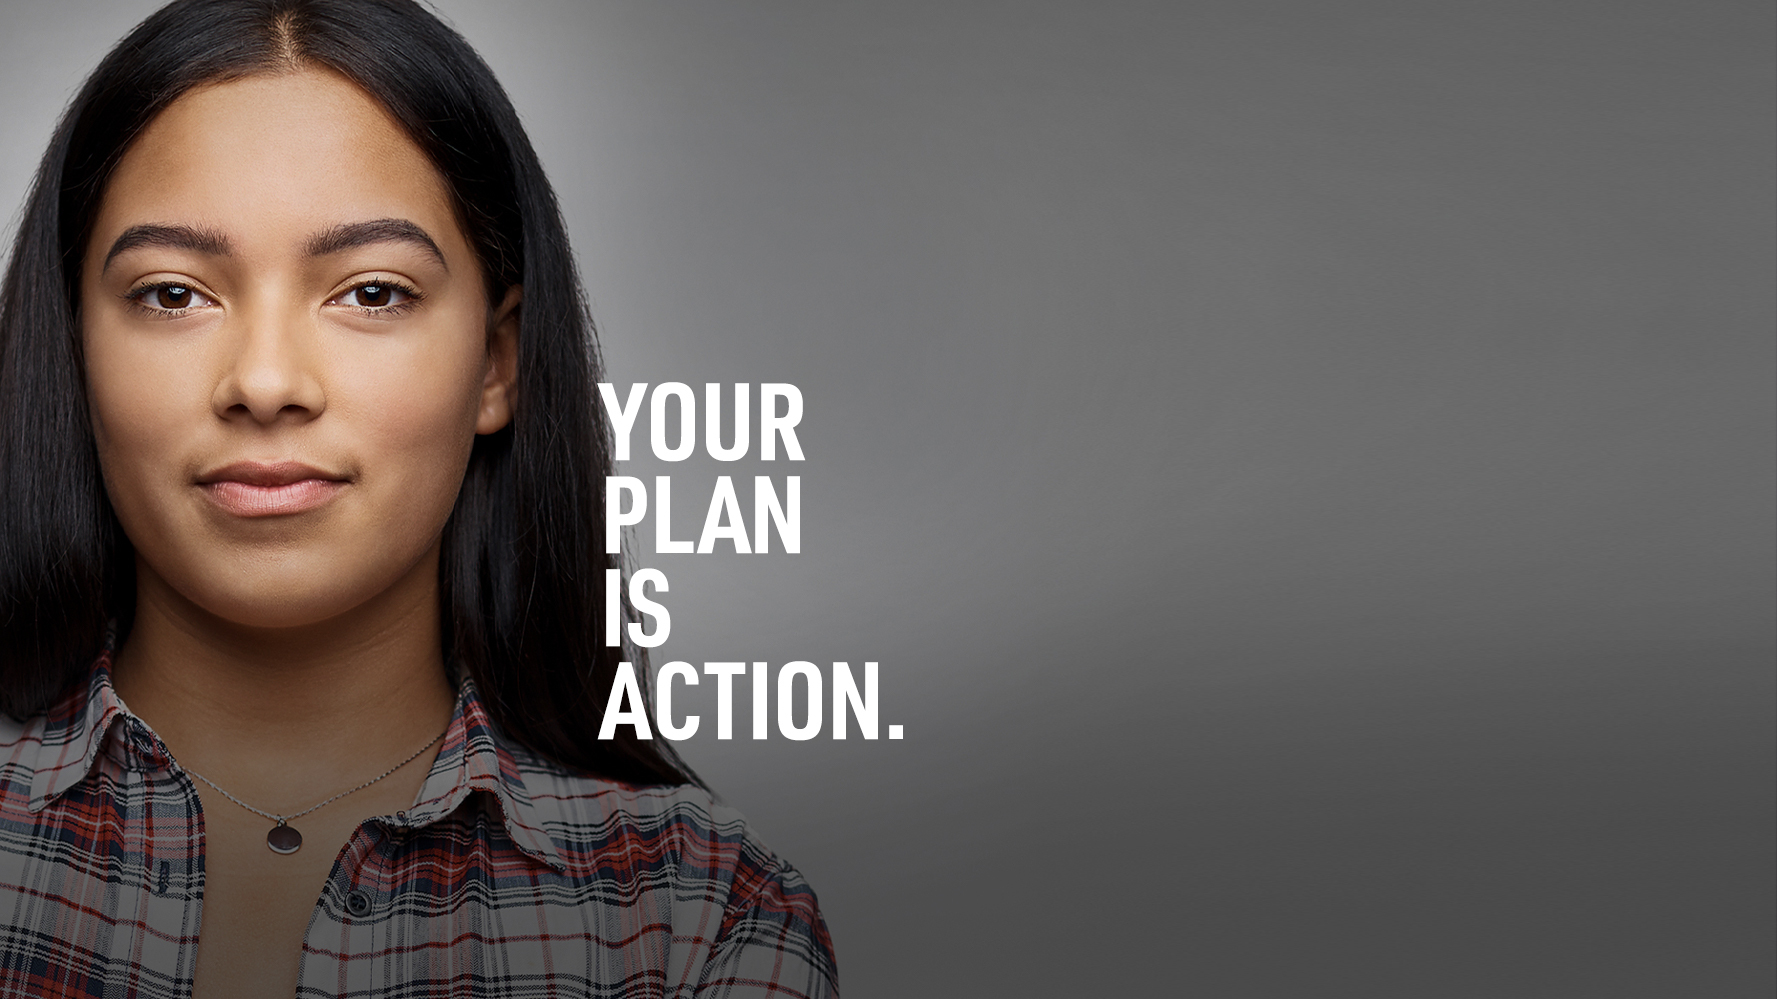 Your Plan is Action